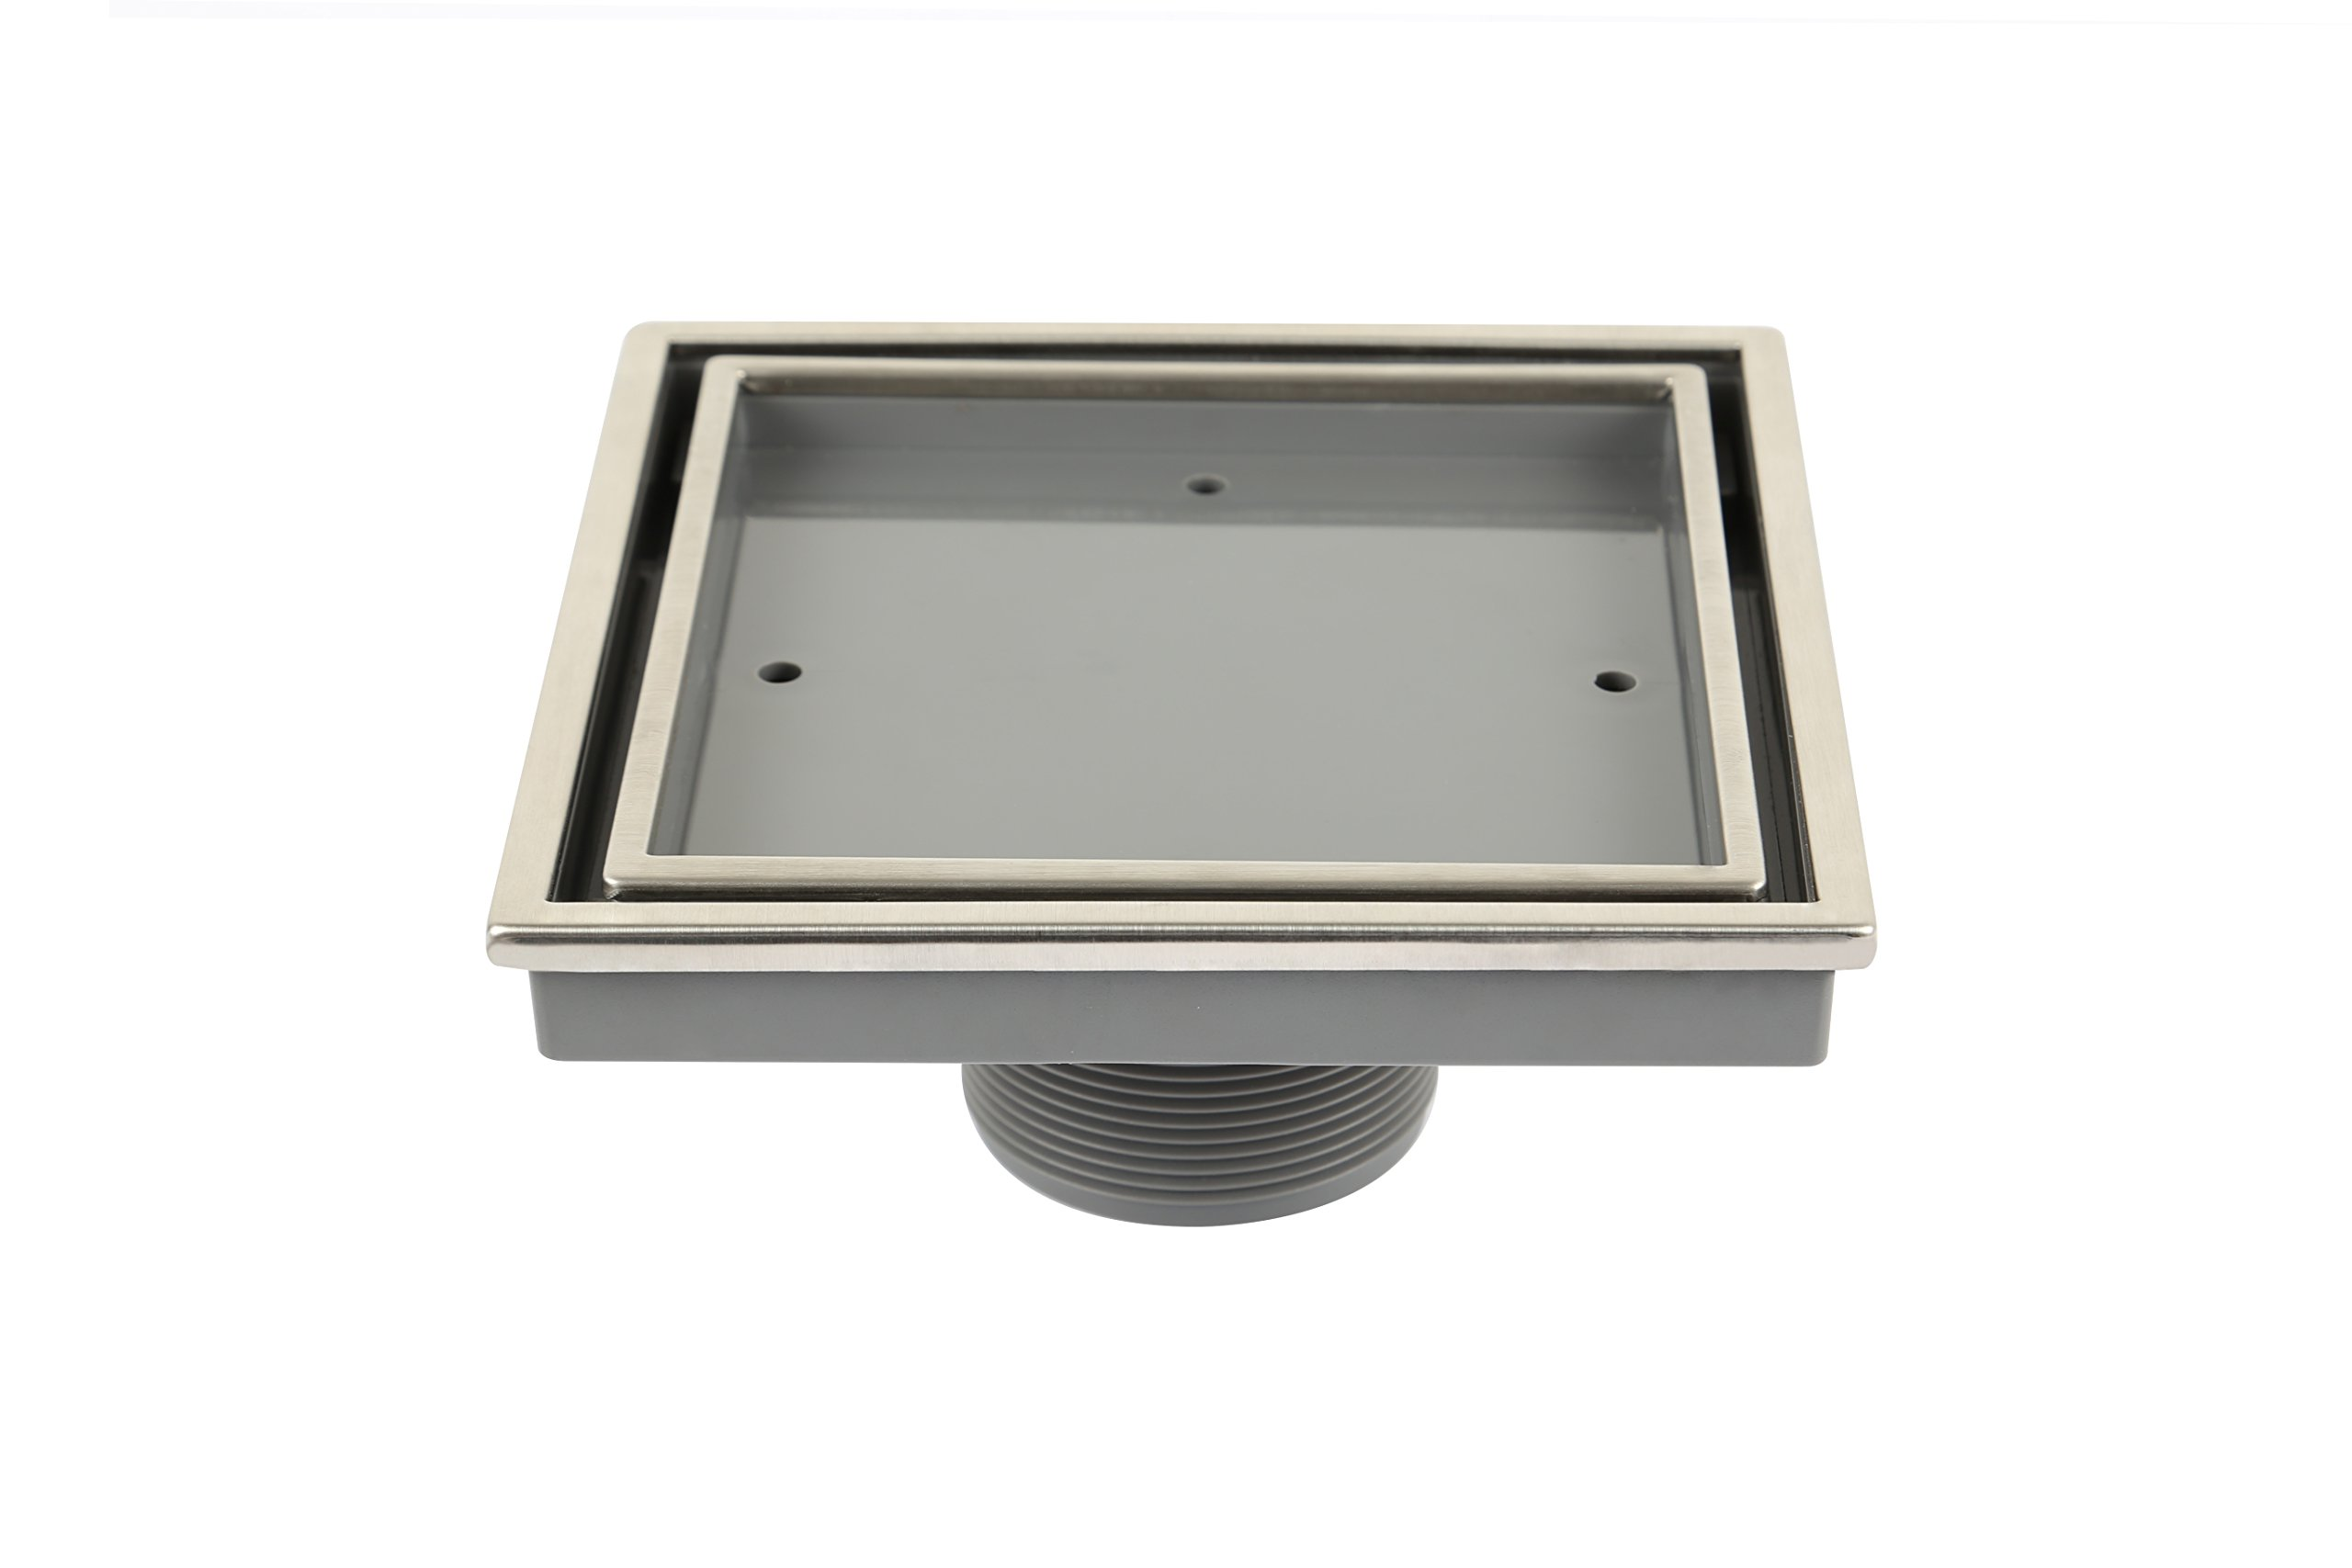 QM Tile-In Center/Square Shower Drain, Polished Stainless Steel Marine 316 Frame + ABS, Lagos Series Veil Line, Kit includes: Hair Strainer, Key